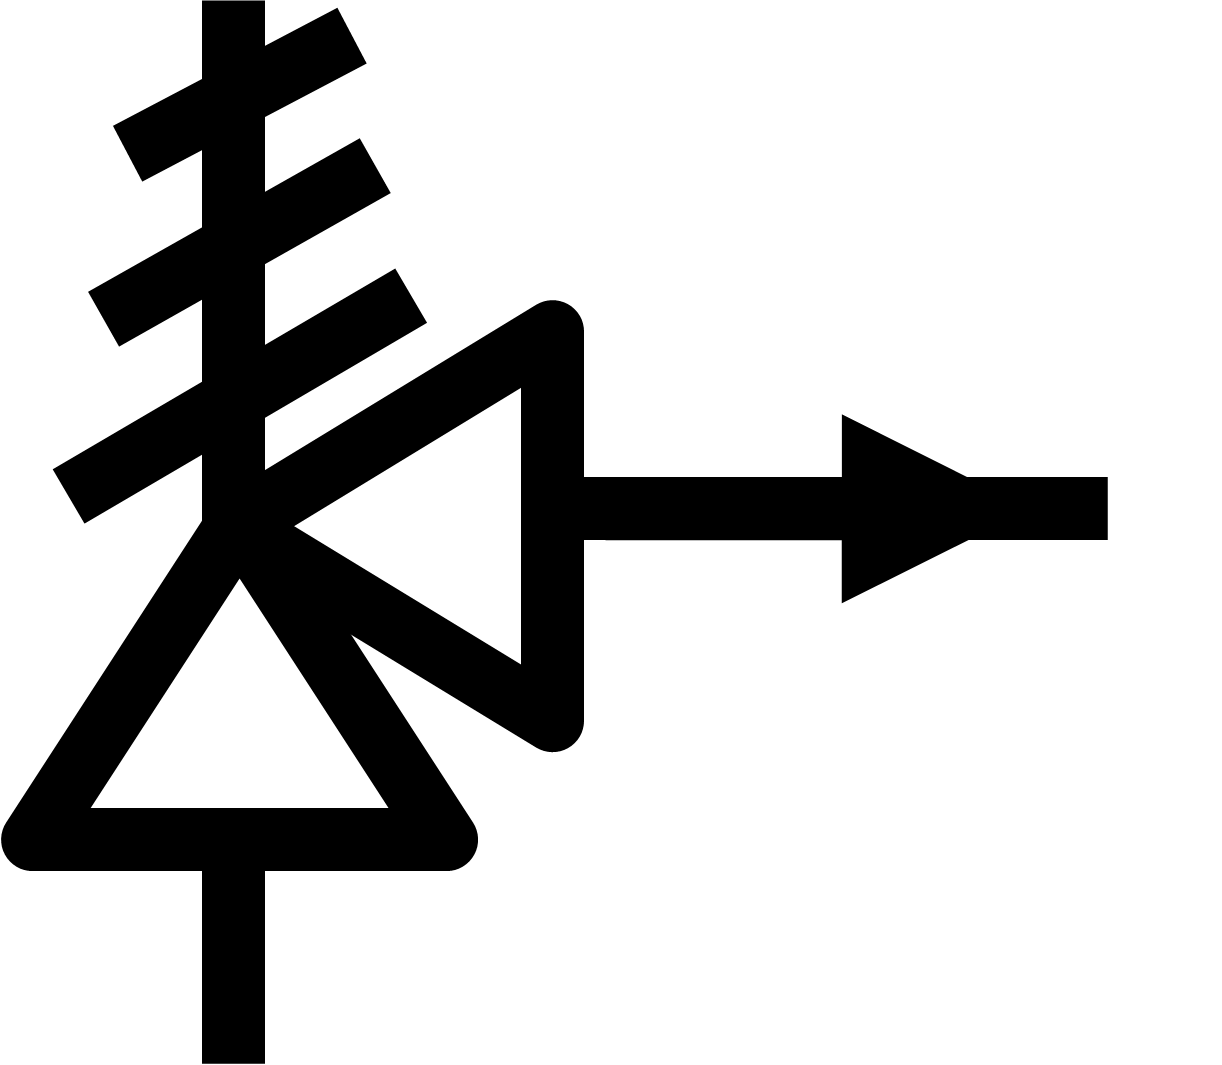 Safety Relief Valve Symbol